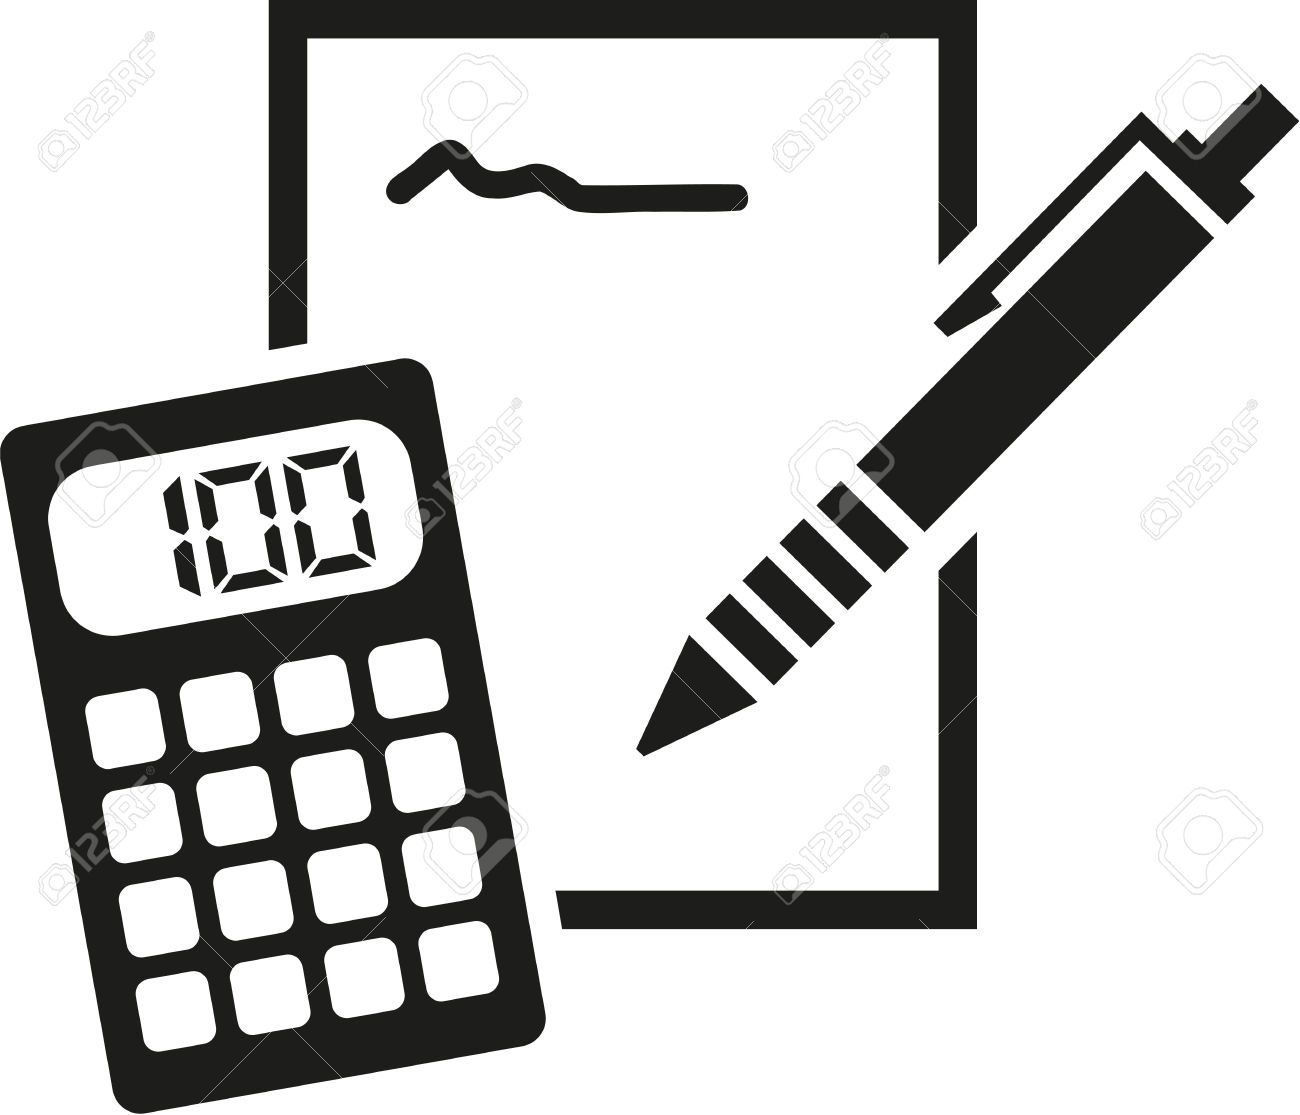 Calculator Clipart Black And White | Free download on ...